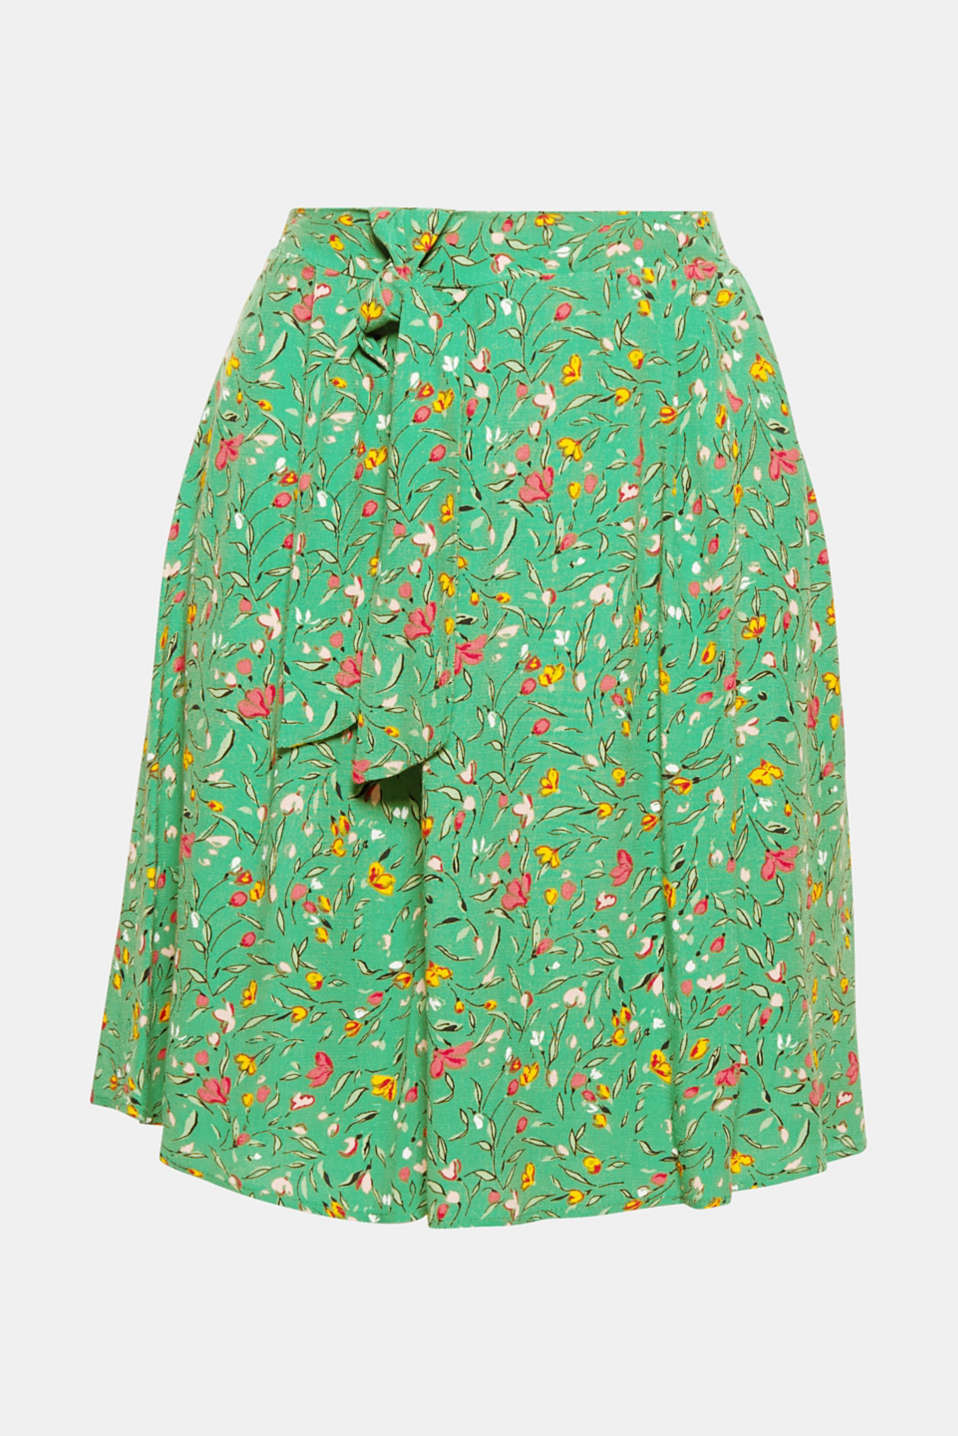 The perfect summer skirt: lightweight and fluid, swirling and flared, with a colourful floral print and bow detail at the front on the partially elasticated waistband!